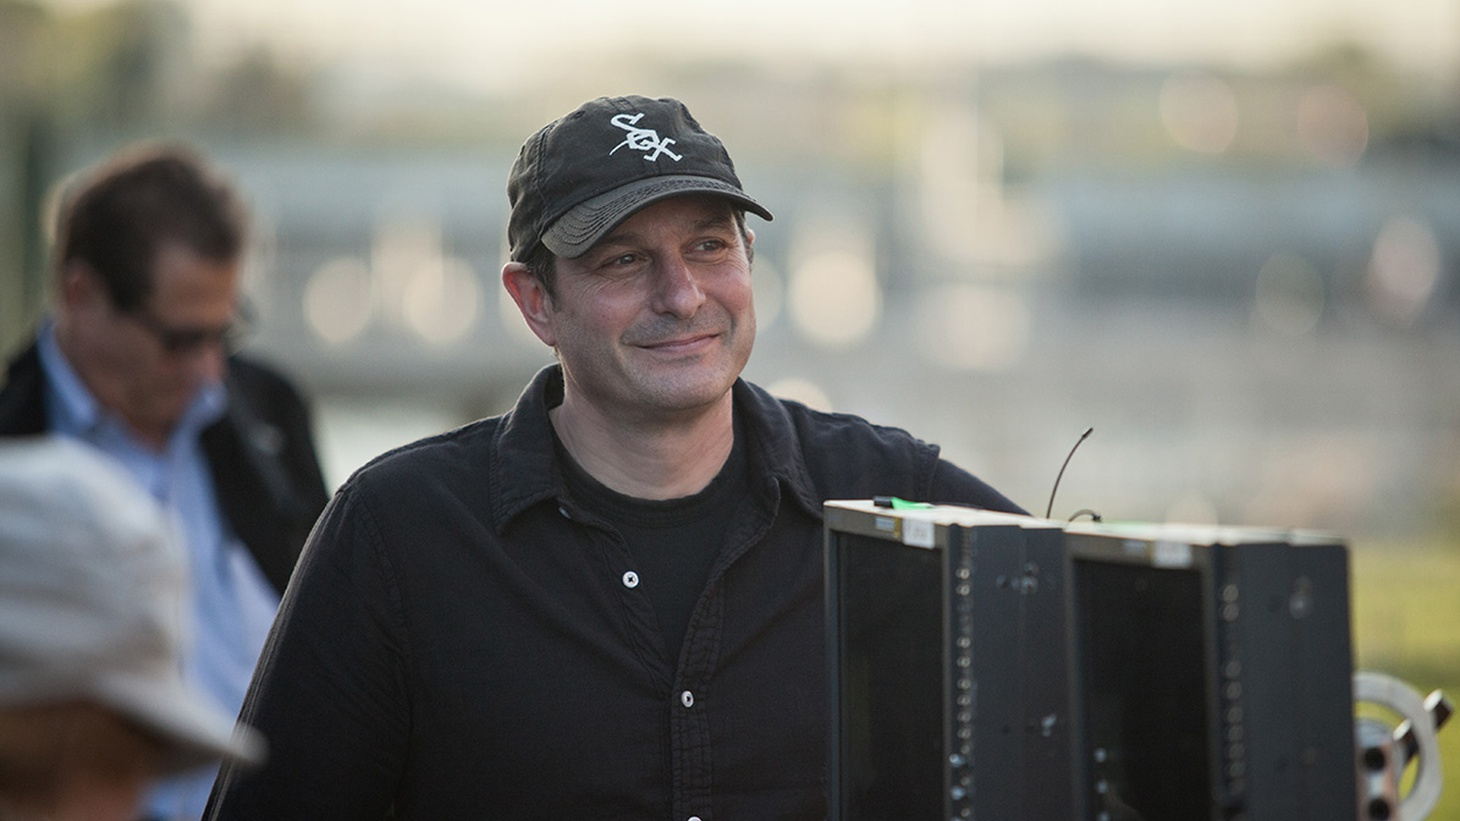 Filmmaker Scott Frank on adapting Lawrence Block's popular novels to the big screen in A Walk Among the Tombstones.